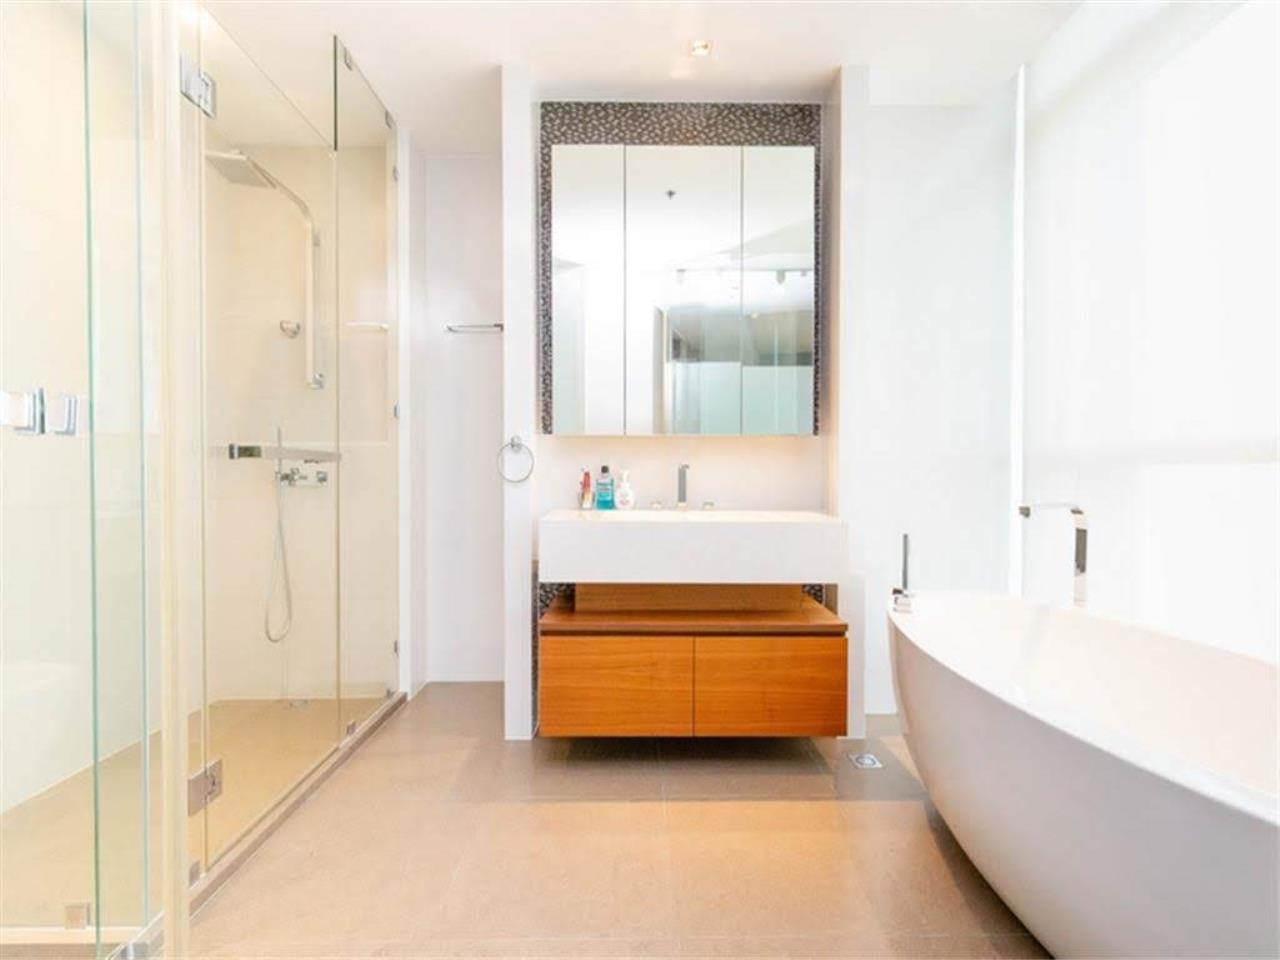 Bestbkkcondos Agency's The River - 233,8 sqm - For Sale : 52 000 000 THB - 3 Bedrooms 30